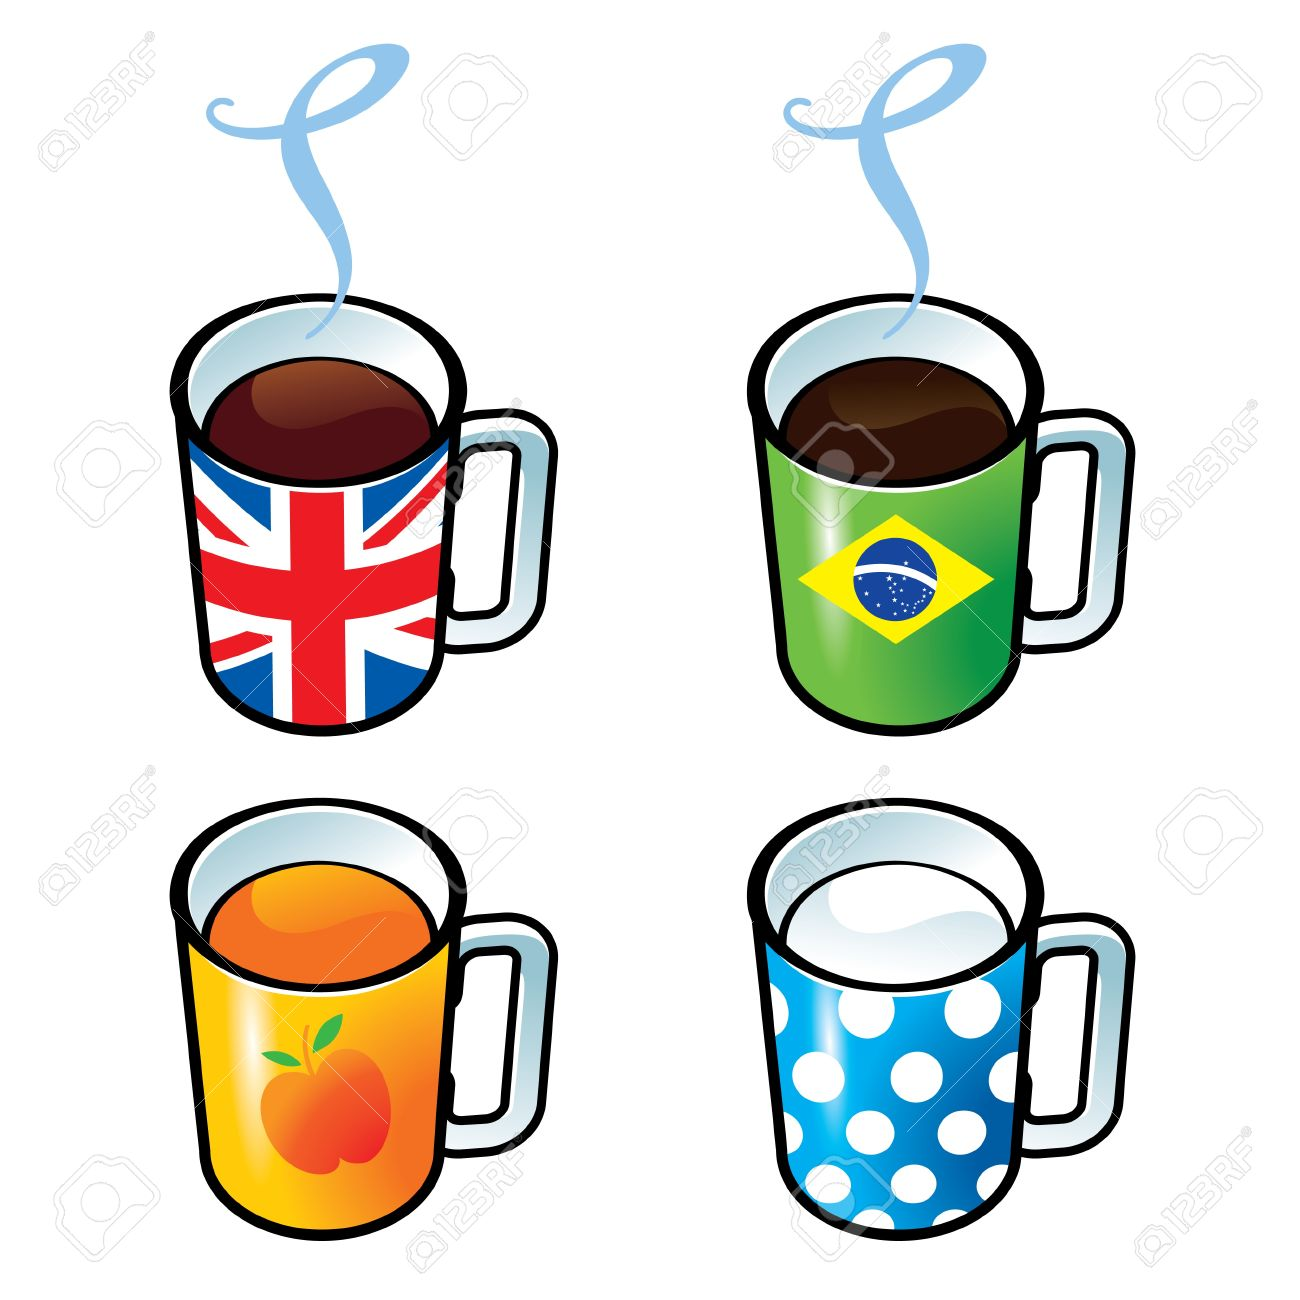 Milk and juice clipart.